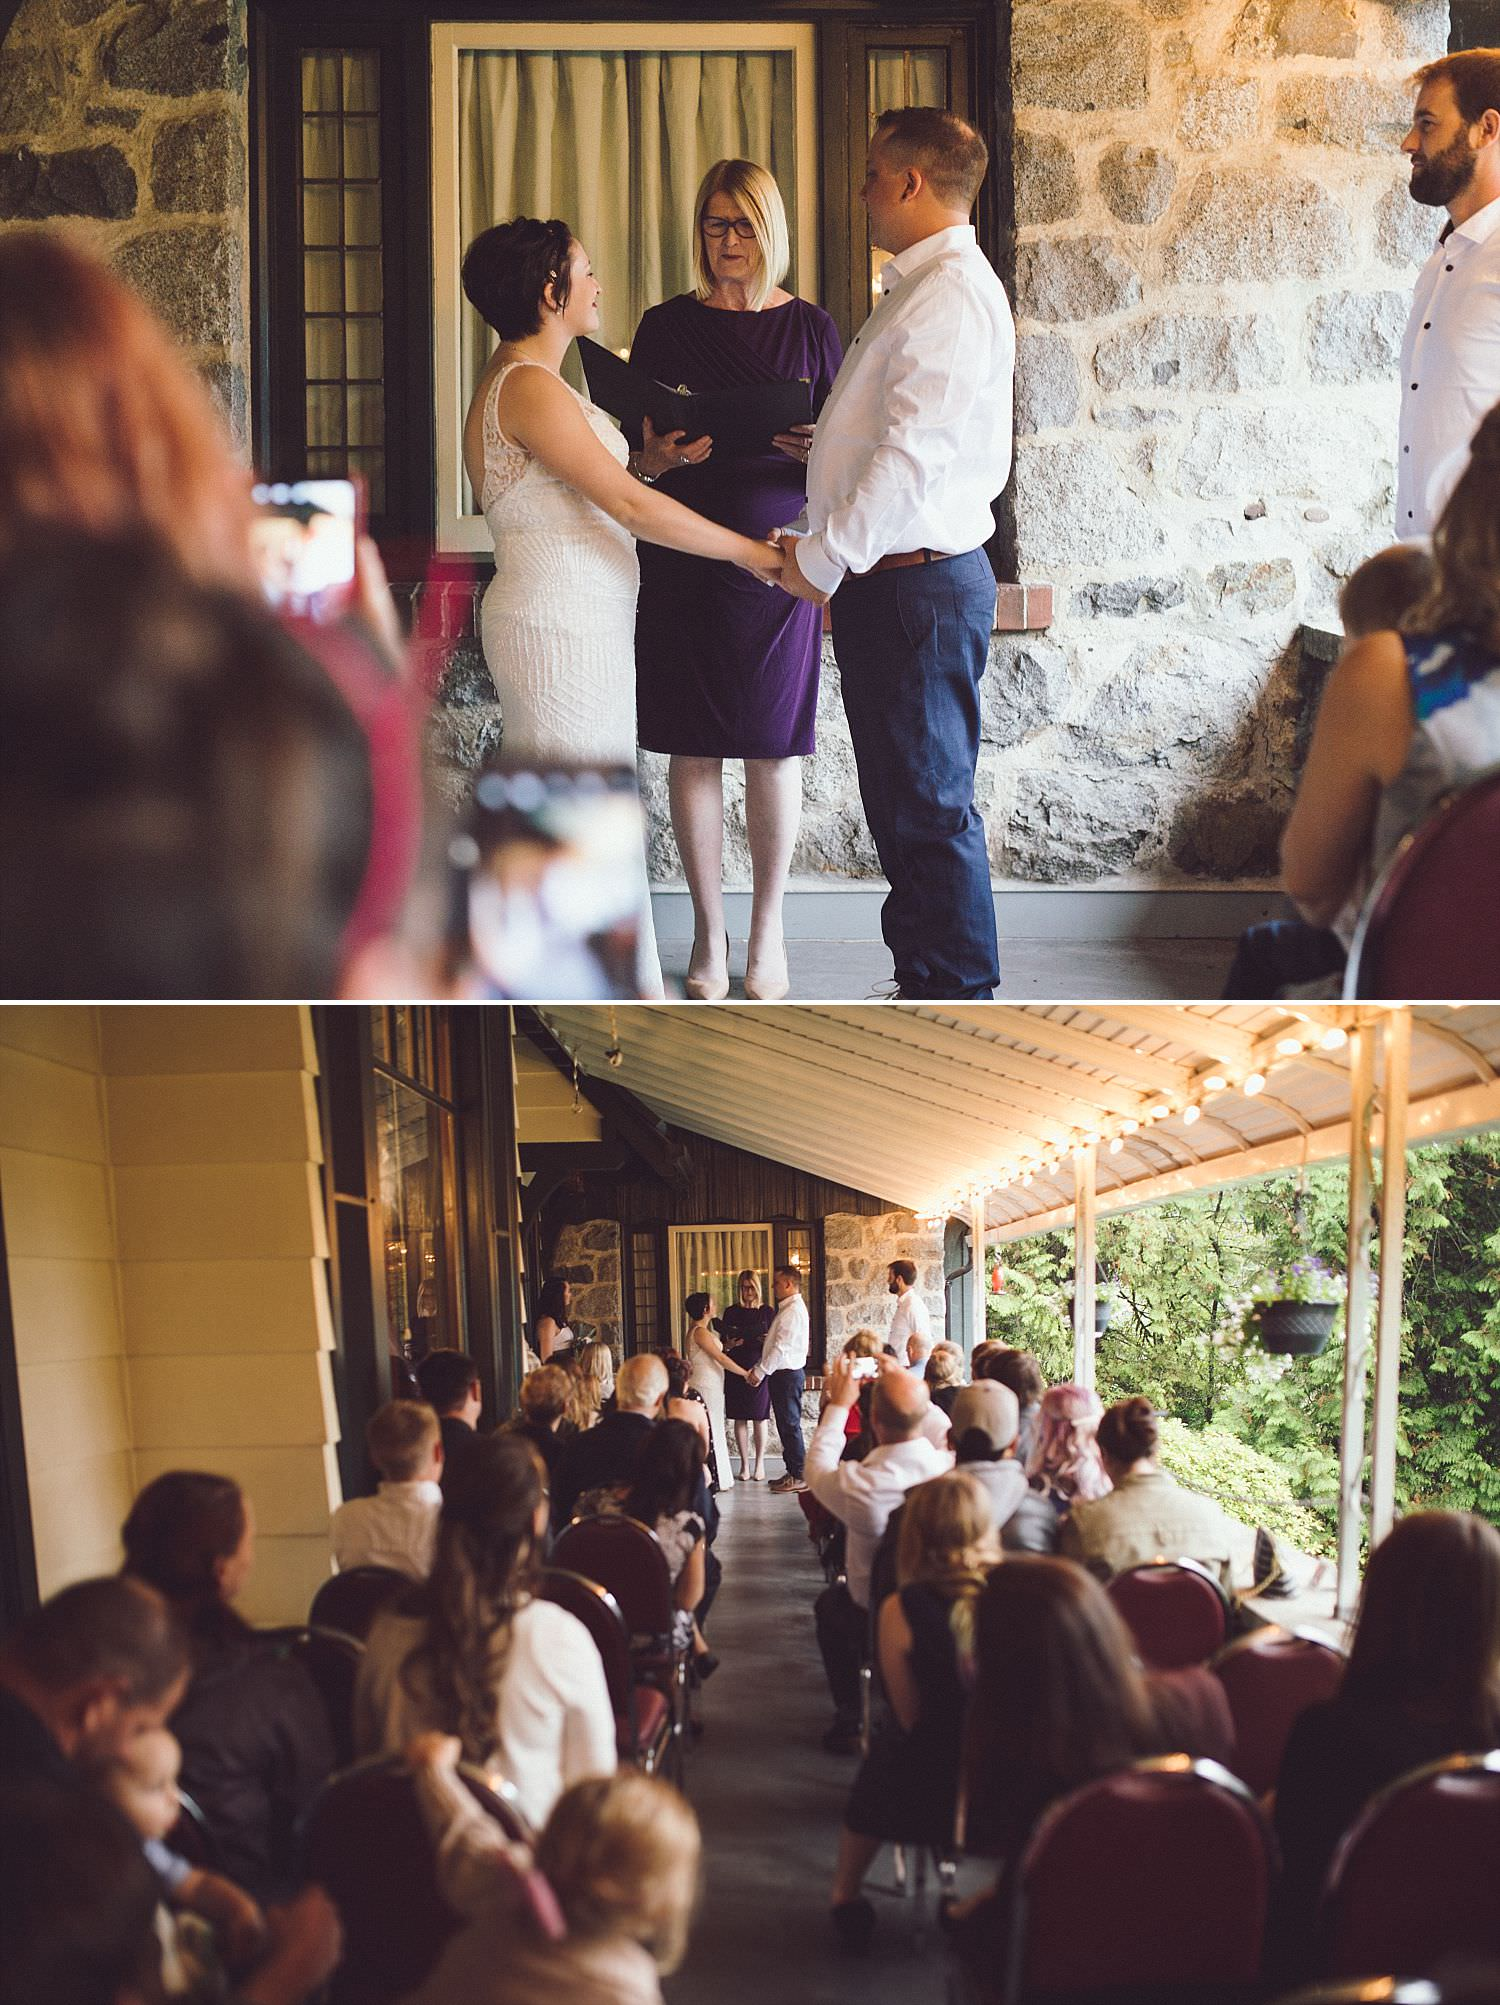 Intimate and Romantic wedding ceremony under the covered patio at Minnekhada Lodge in Coquitlam, BC